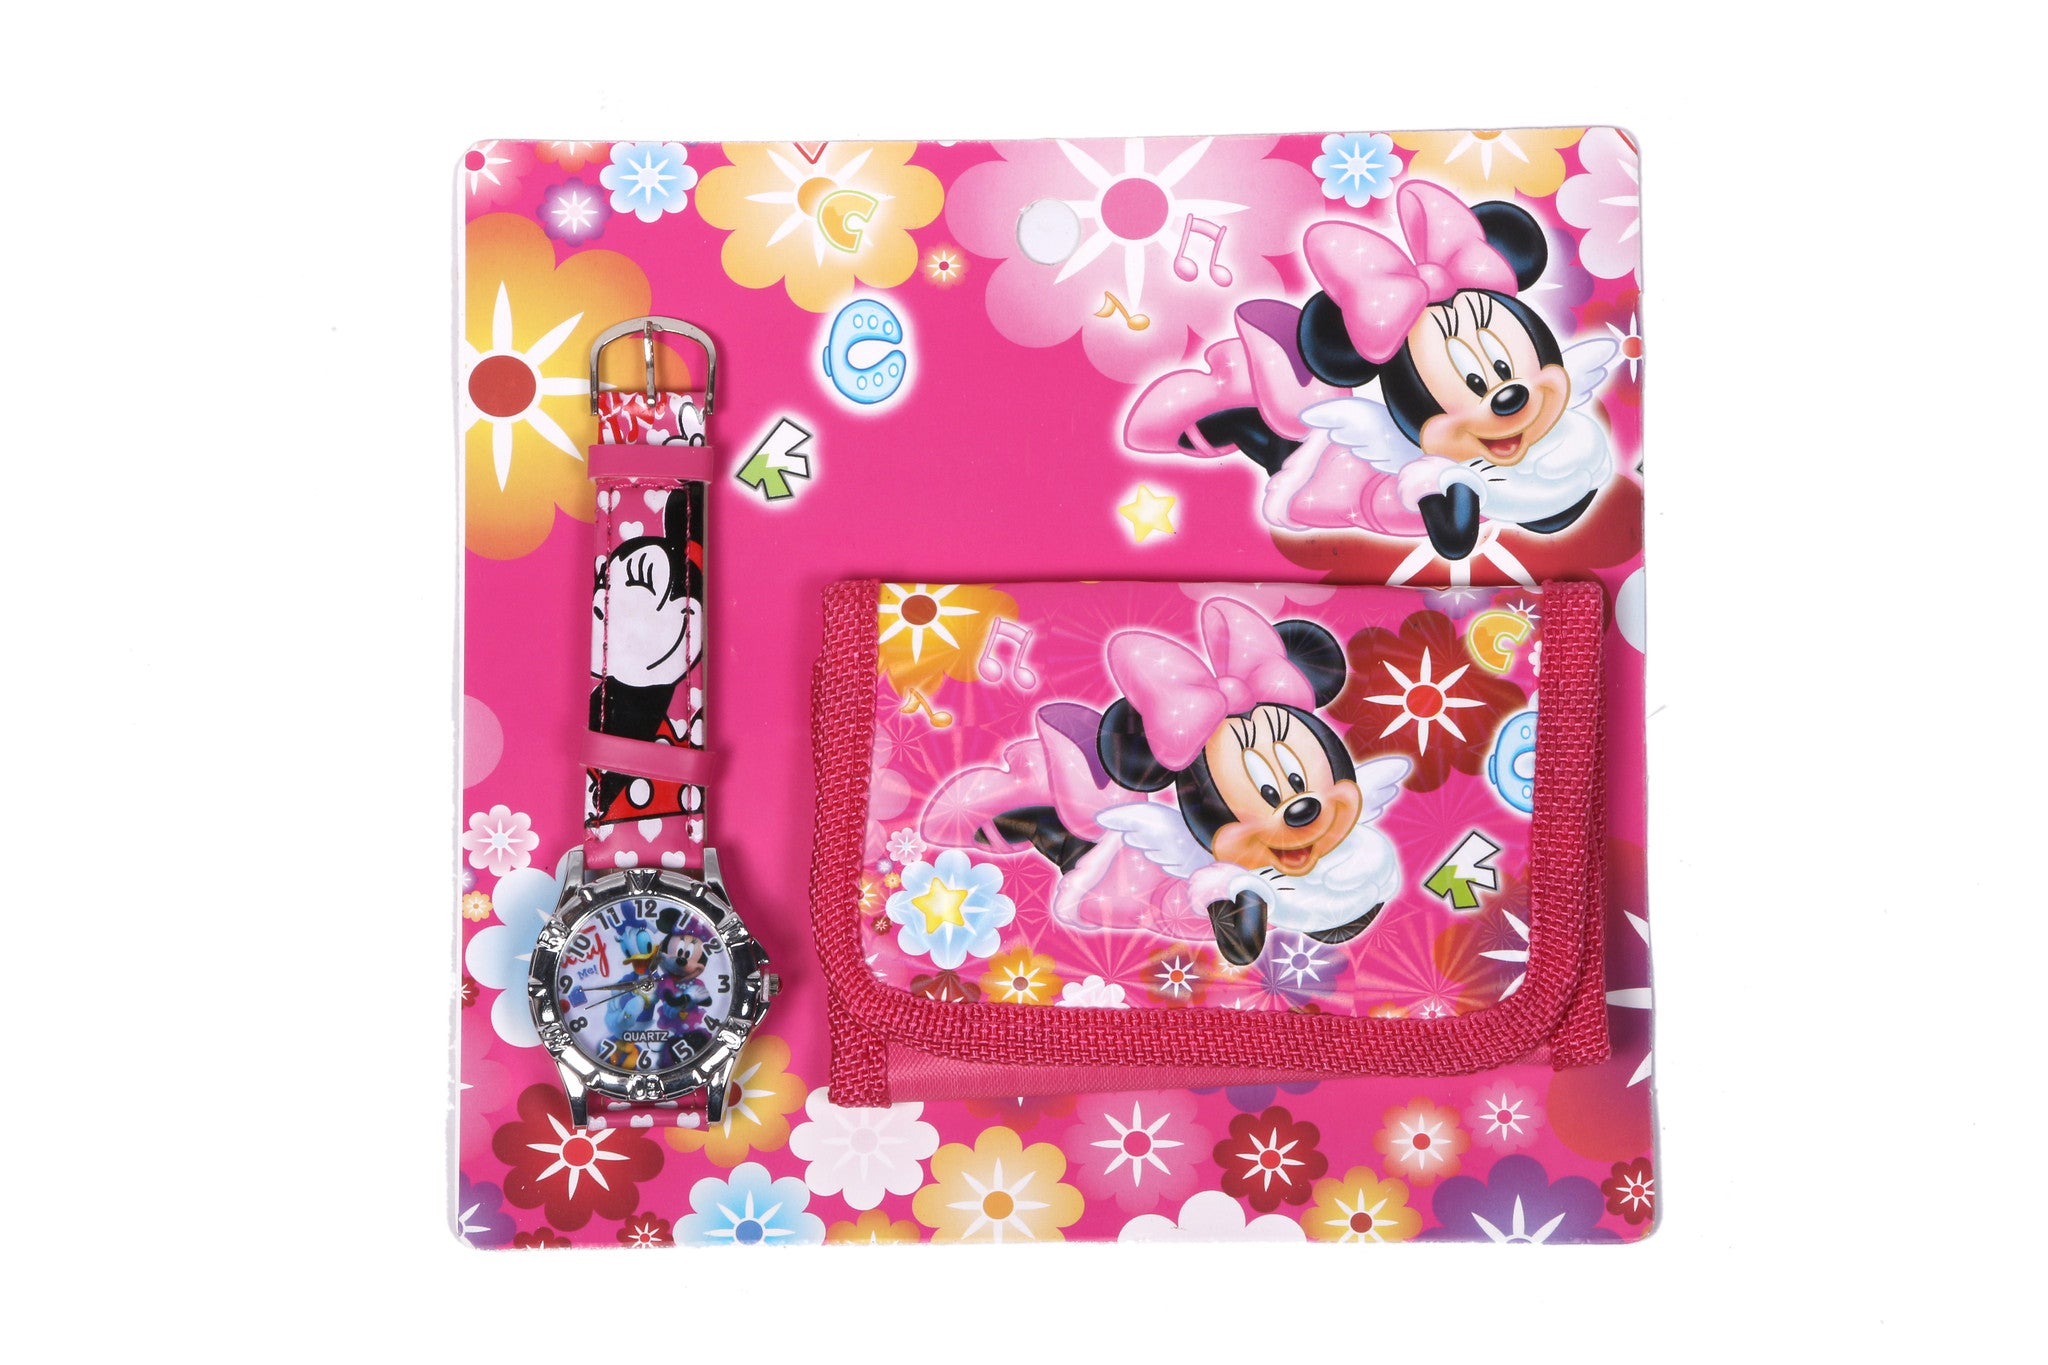 Minnie Mouse Analog Watch and Designer Wallet Combo